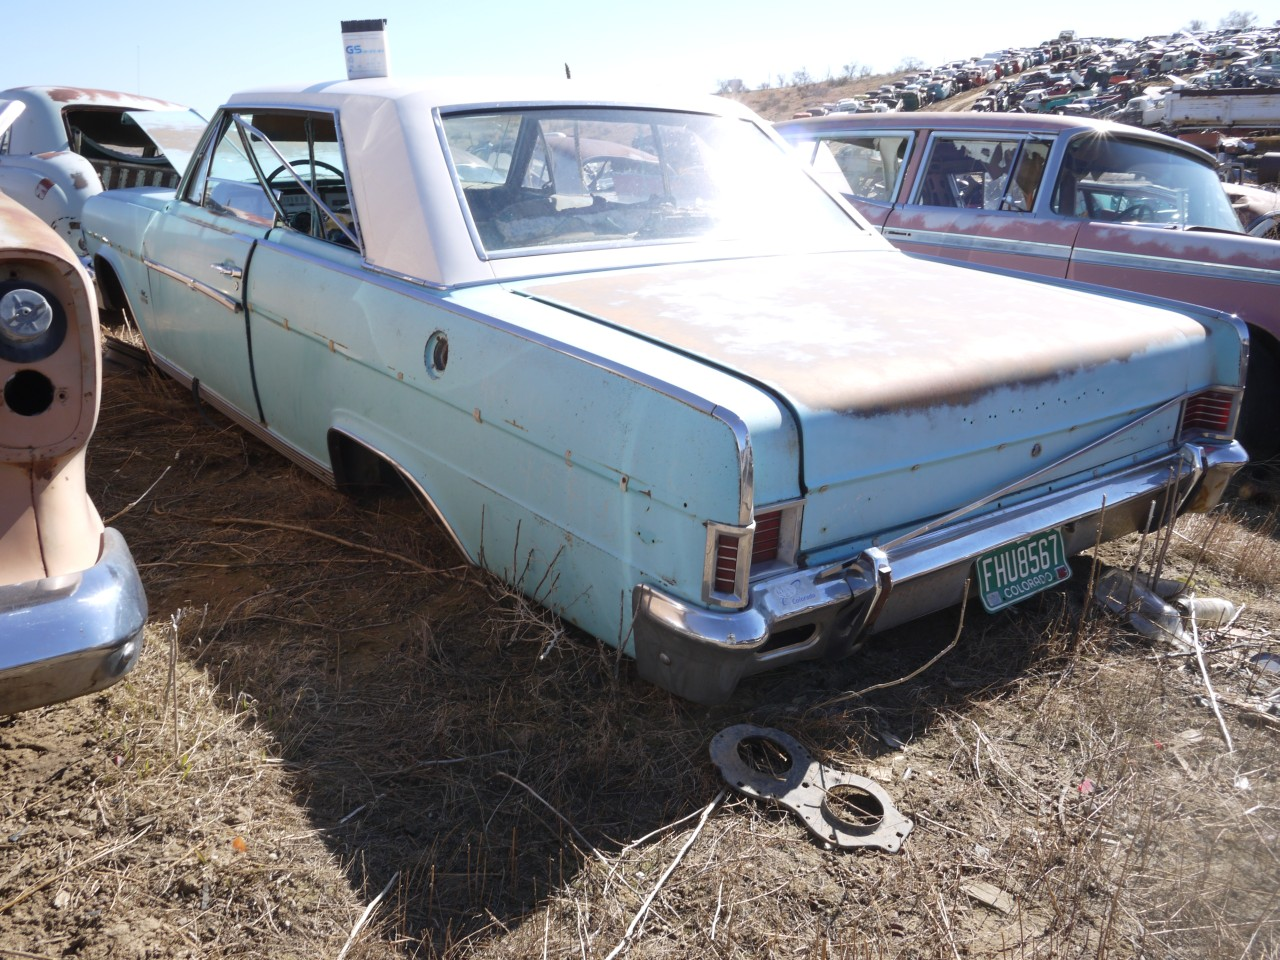 1964 Rambler Classic Wiring Diagram Junkyard Find 1966 770 Coupe The Truth About Cars With That Kind Of Competition At Roughly Same Price American Motors Didnt Sell Many 770s